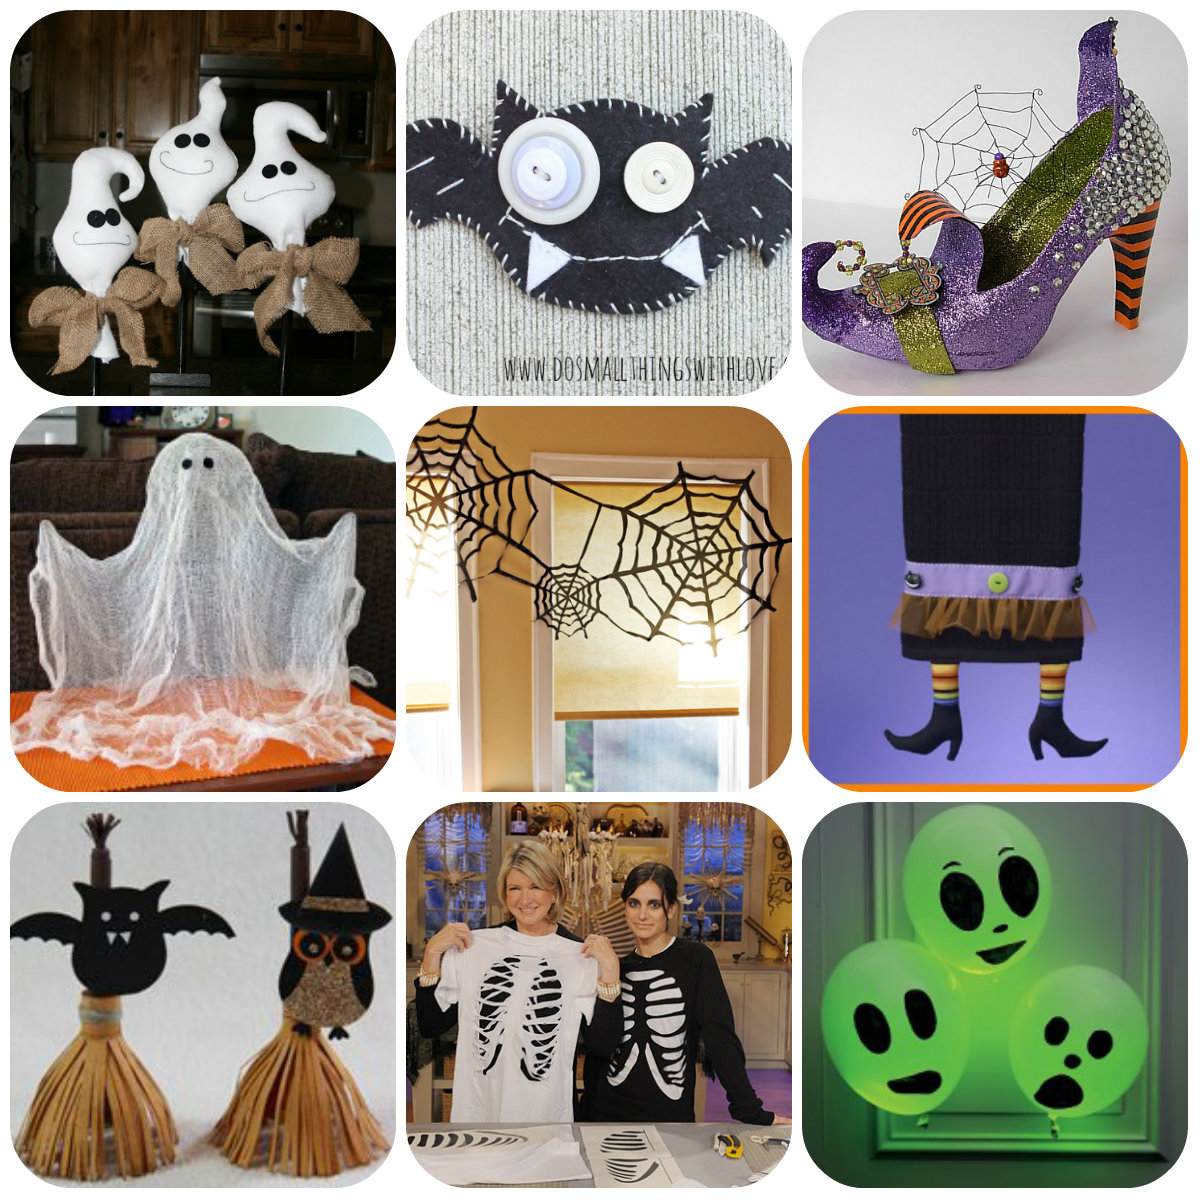 halloween cucito creativo tutorial gratuiti idee creative uncinetto riciclo creativo. Black Bedroom Furniture Sets. Home Design Ideas